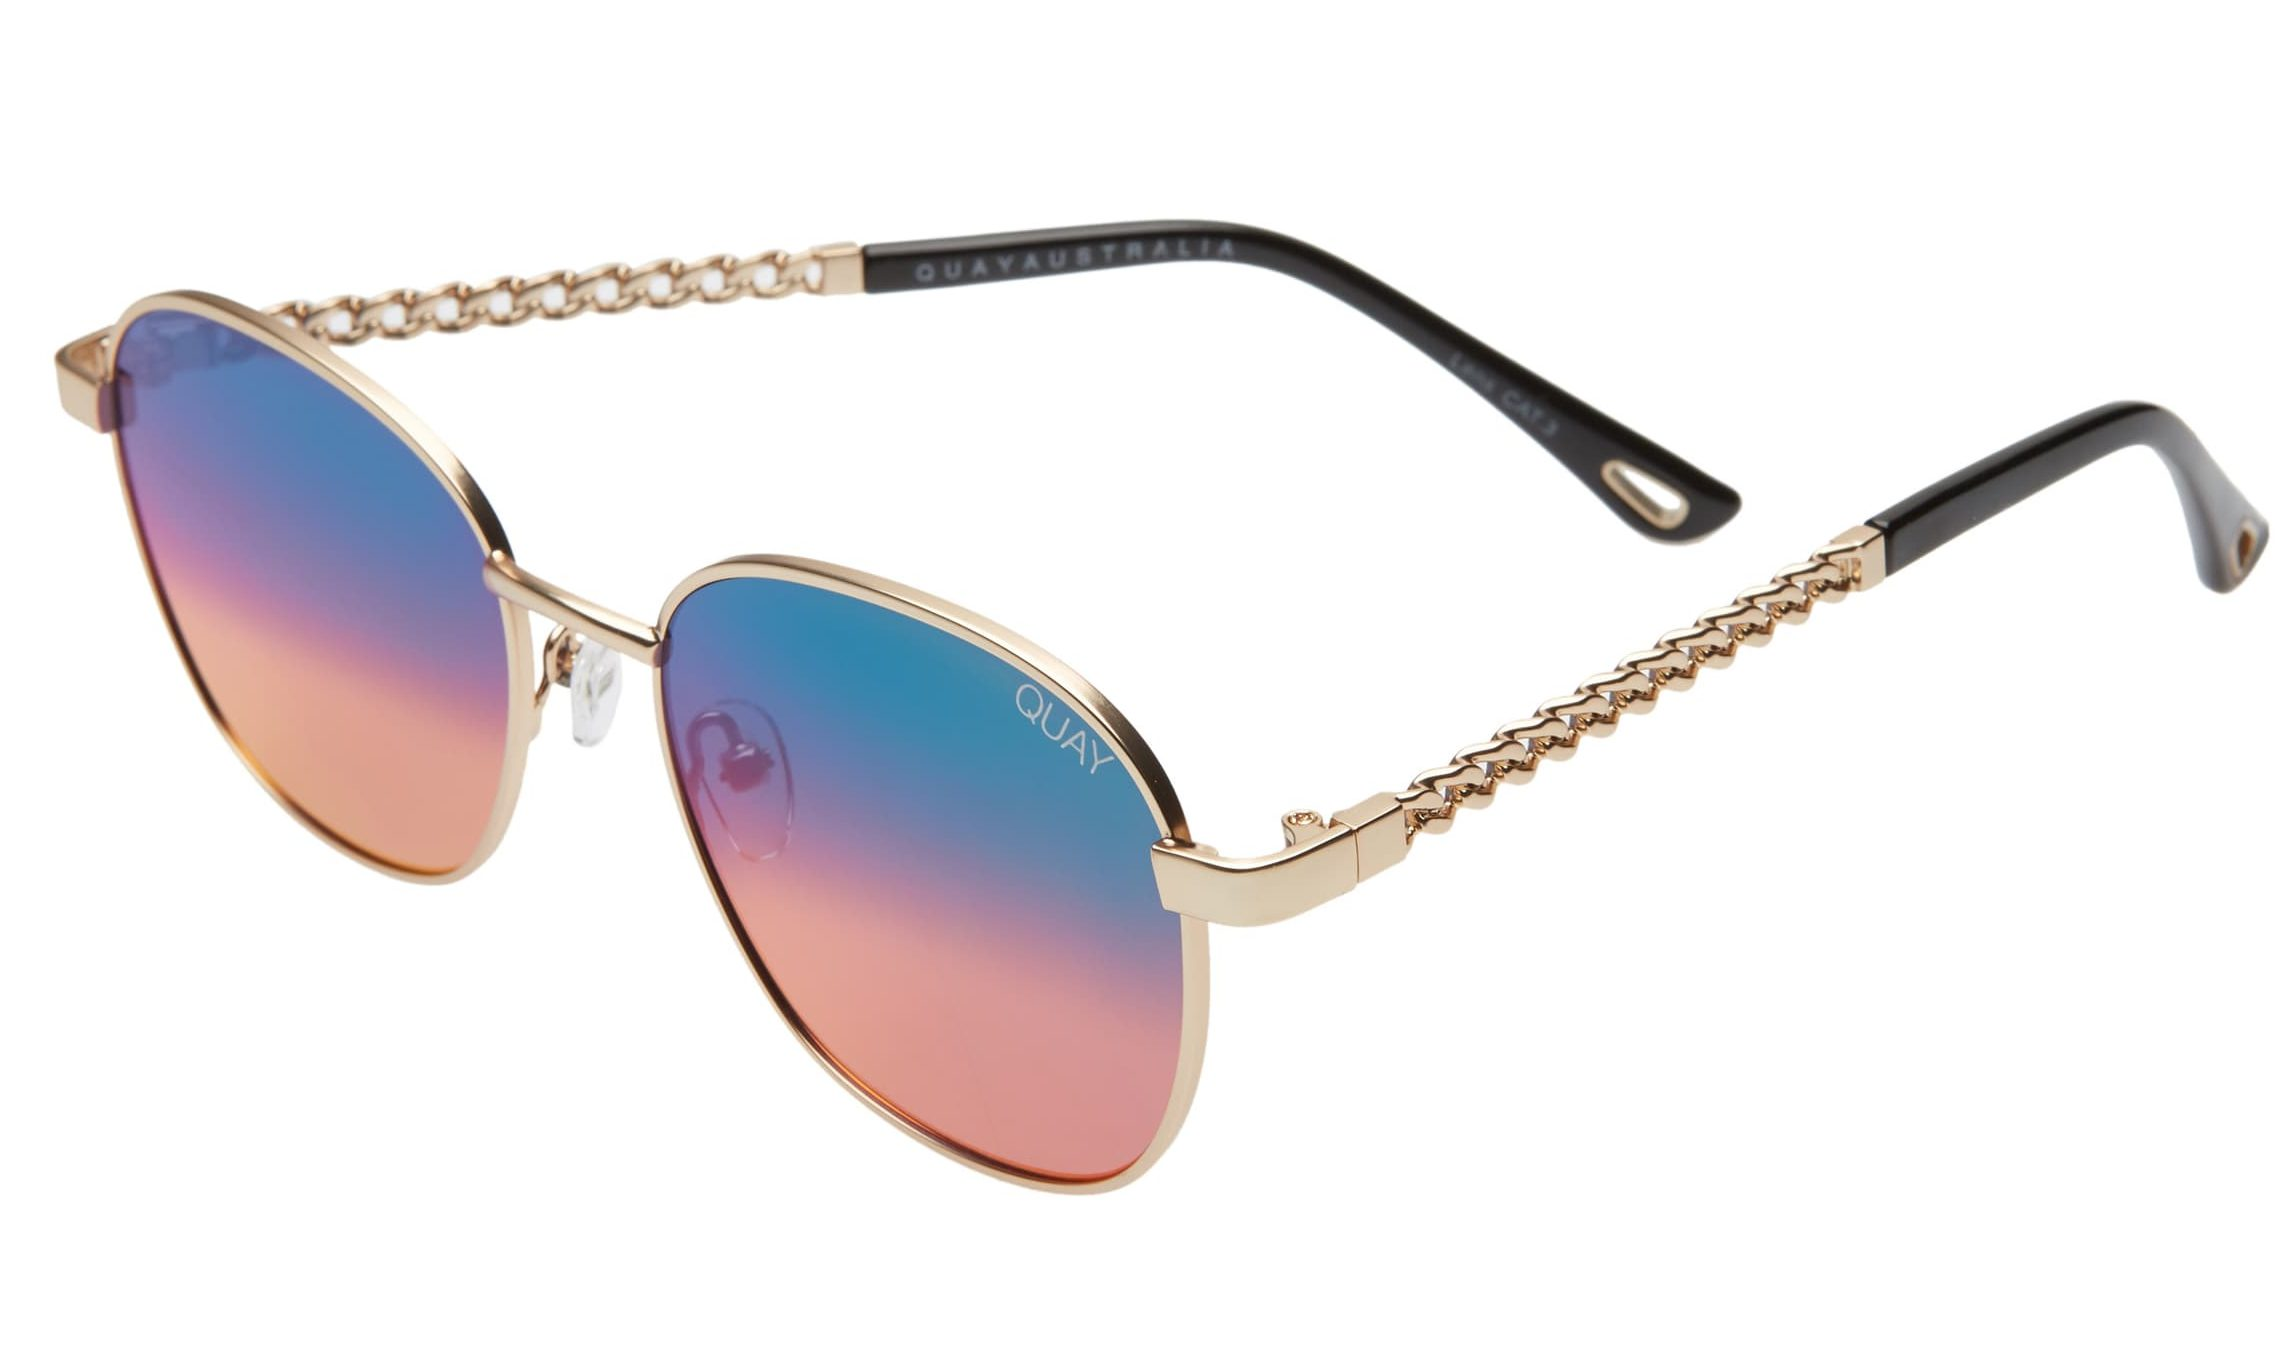 Quay Australia Link Up Round Sunglasses with Chain Strap - Best Gifts Under $100